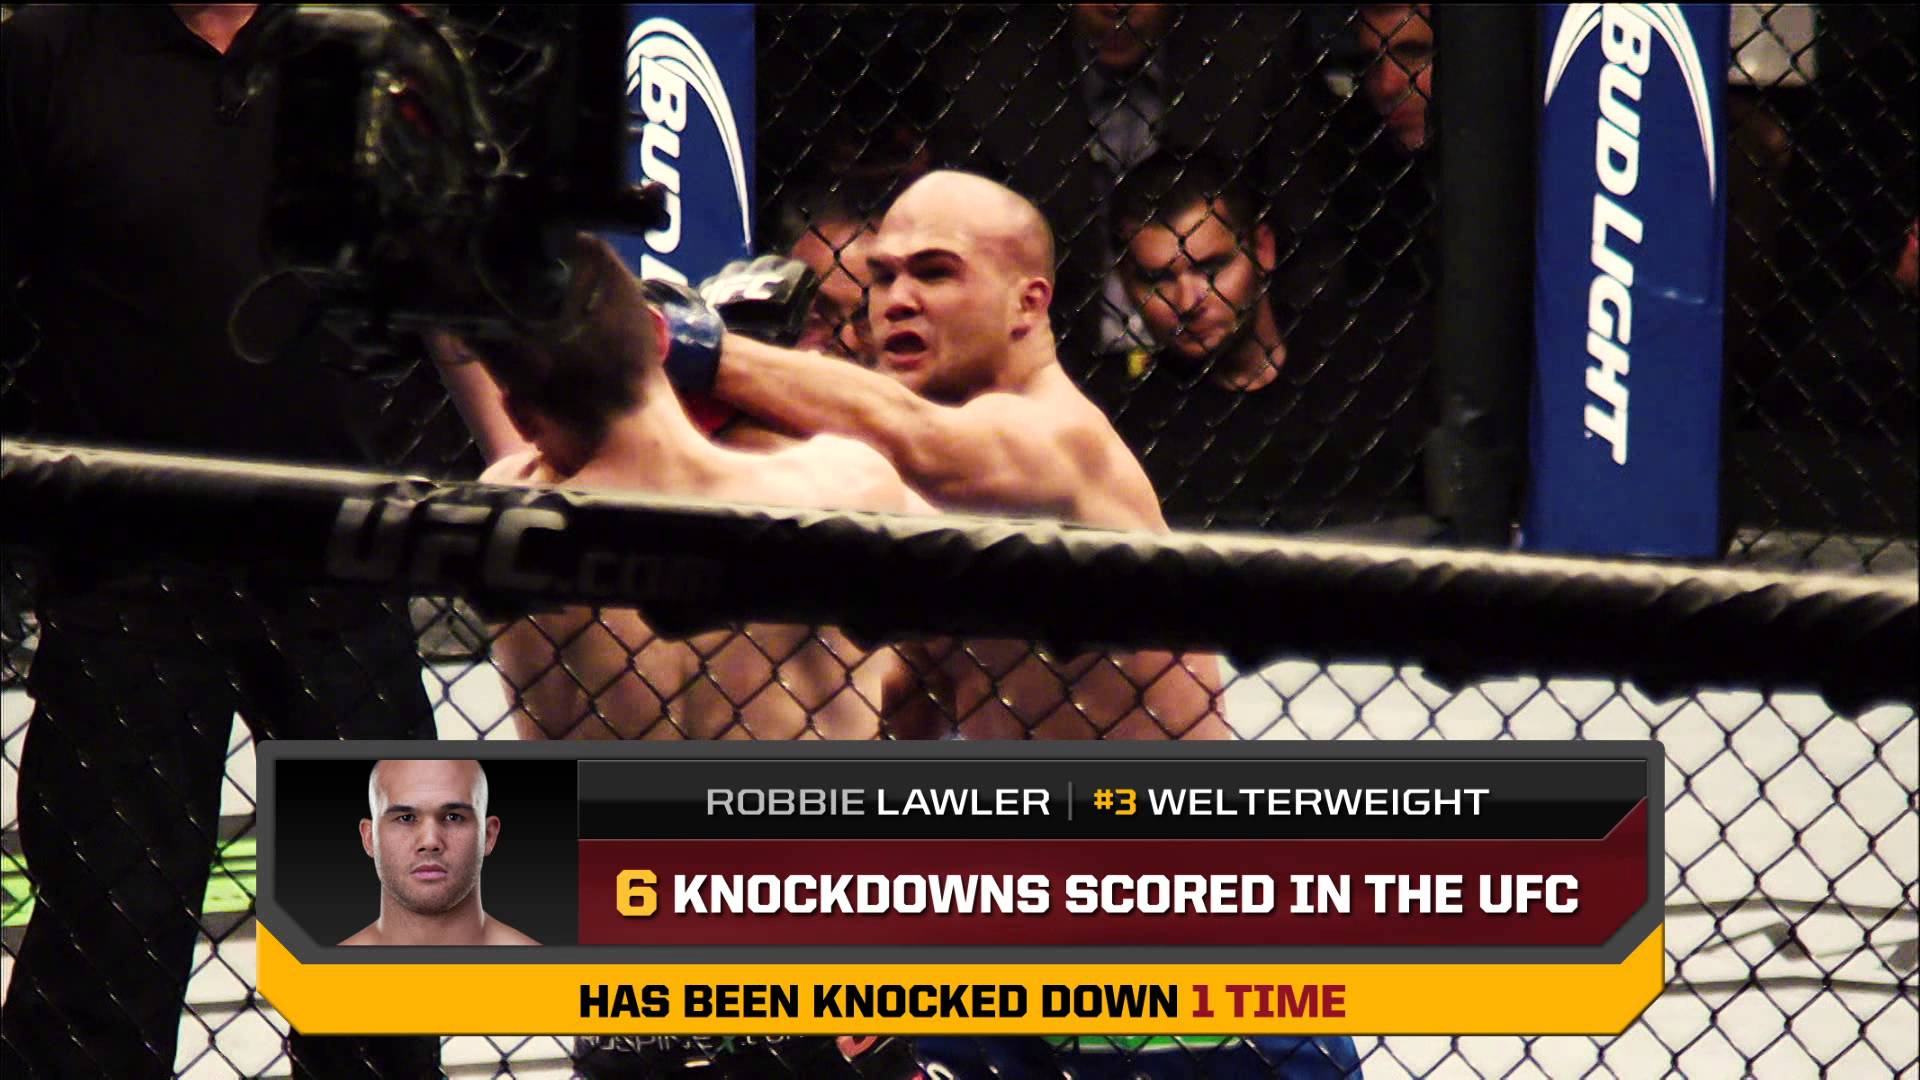 UFC 171: Hendricks vs. Lawler By the Numbers